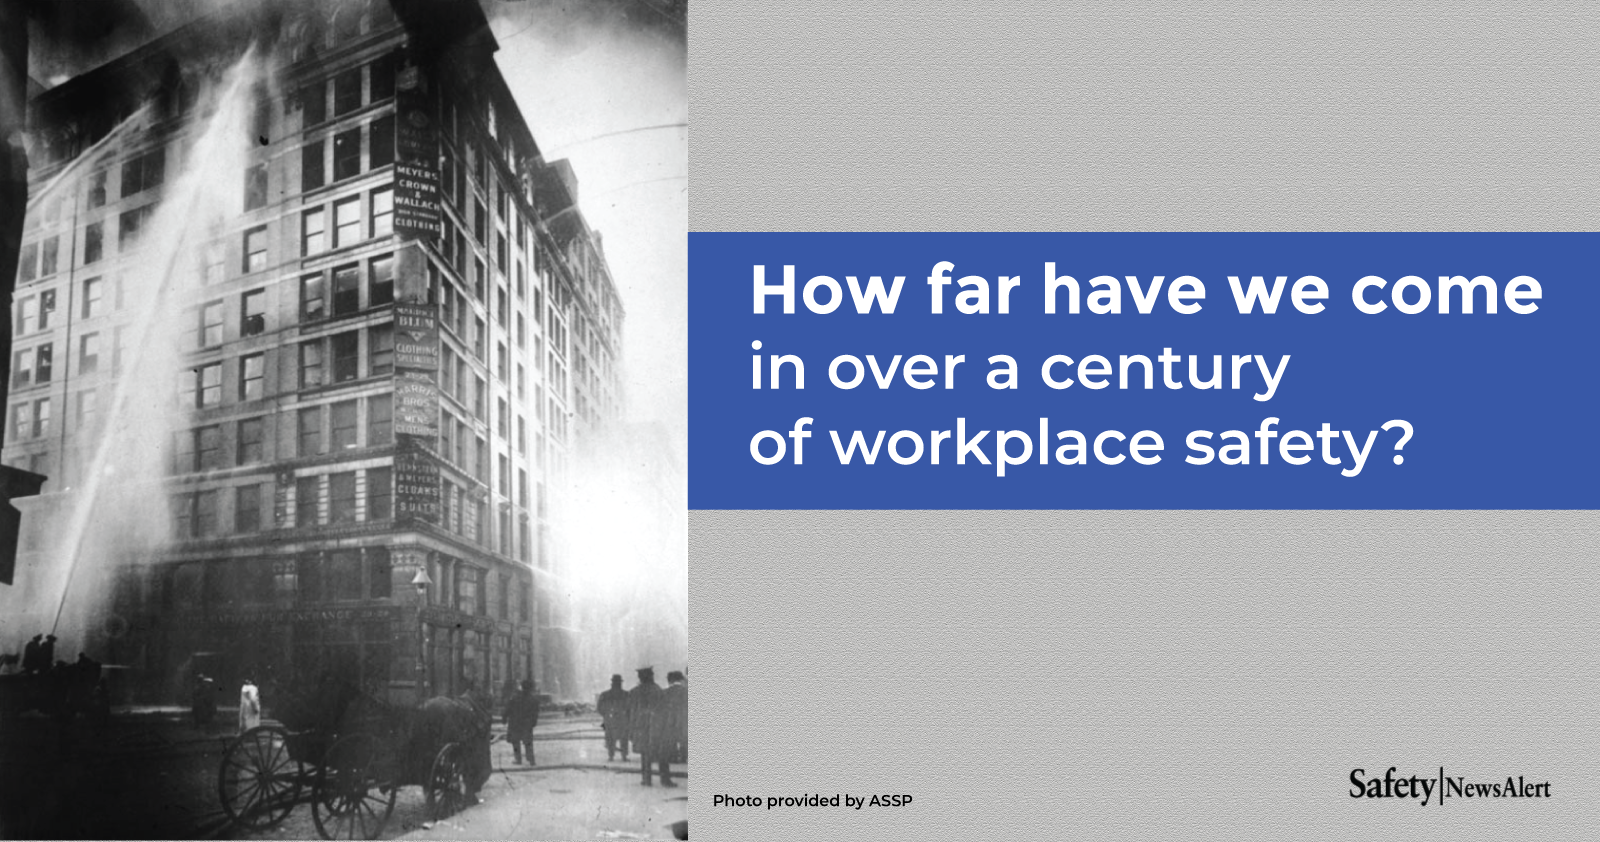 how far have we come in over a century of workplace safety